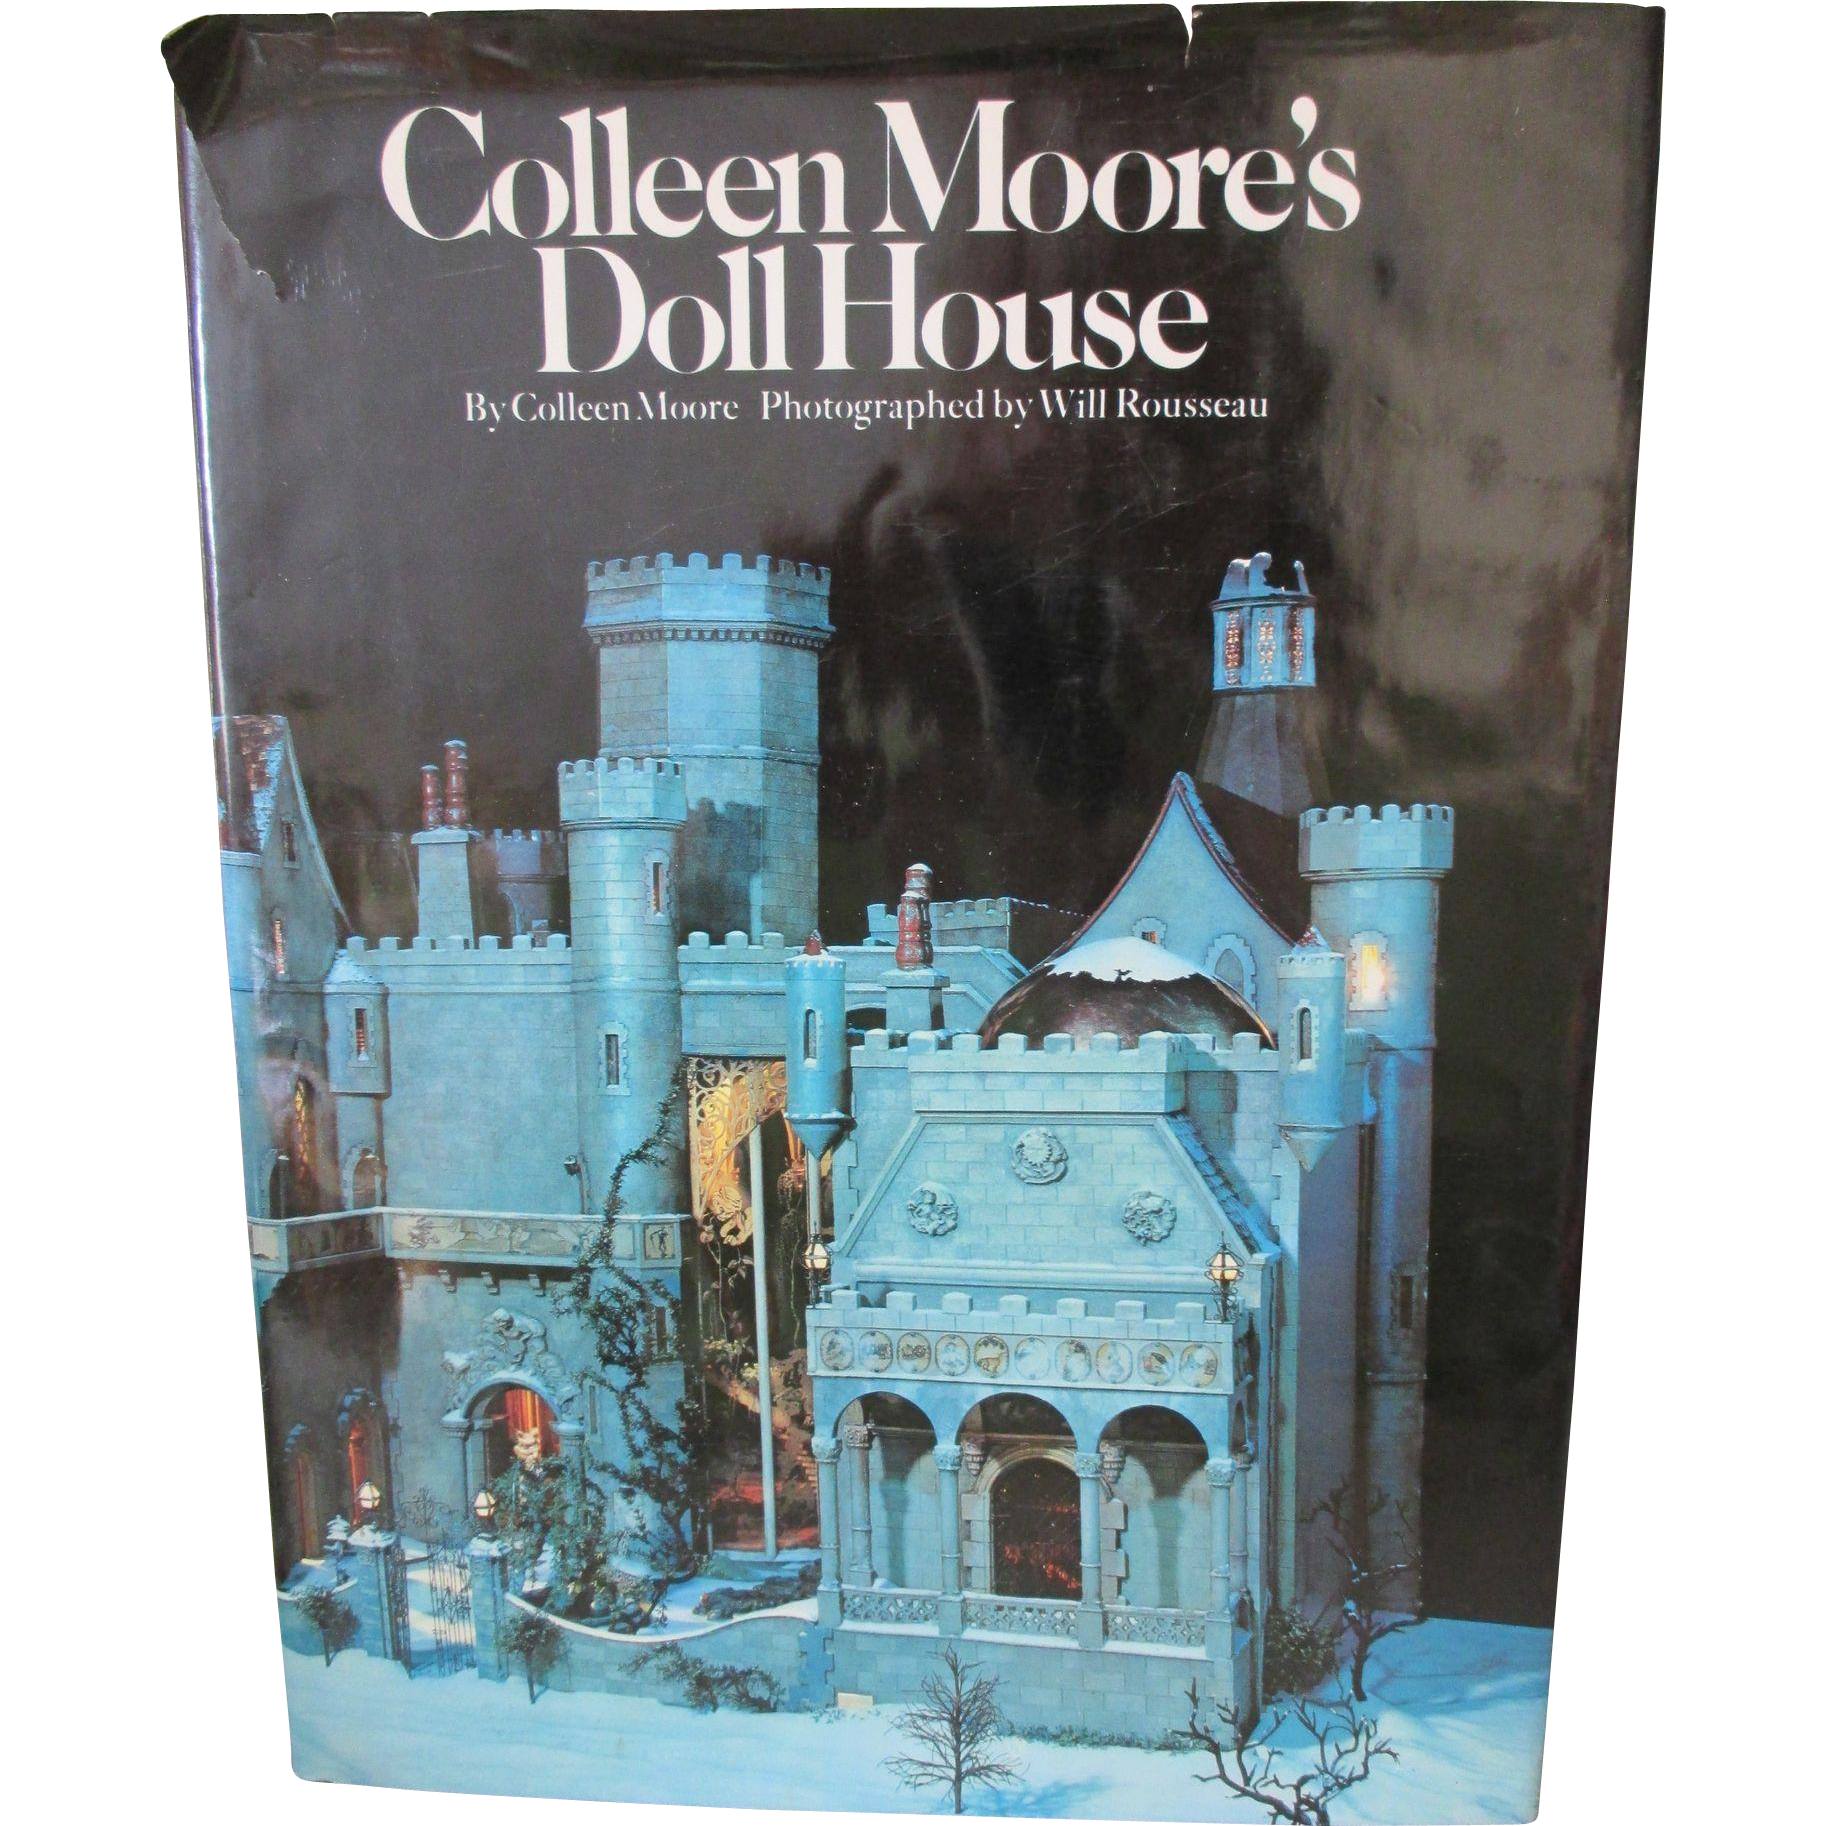 Colleen Moore's Doll House Book From Nostalgicimages On